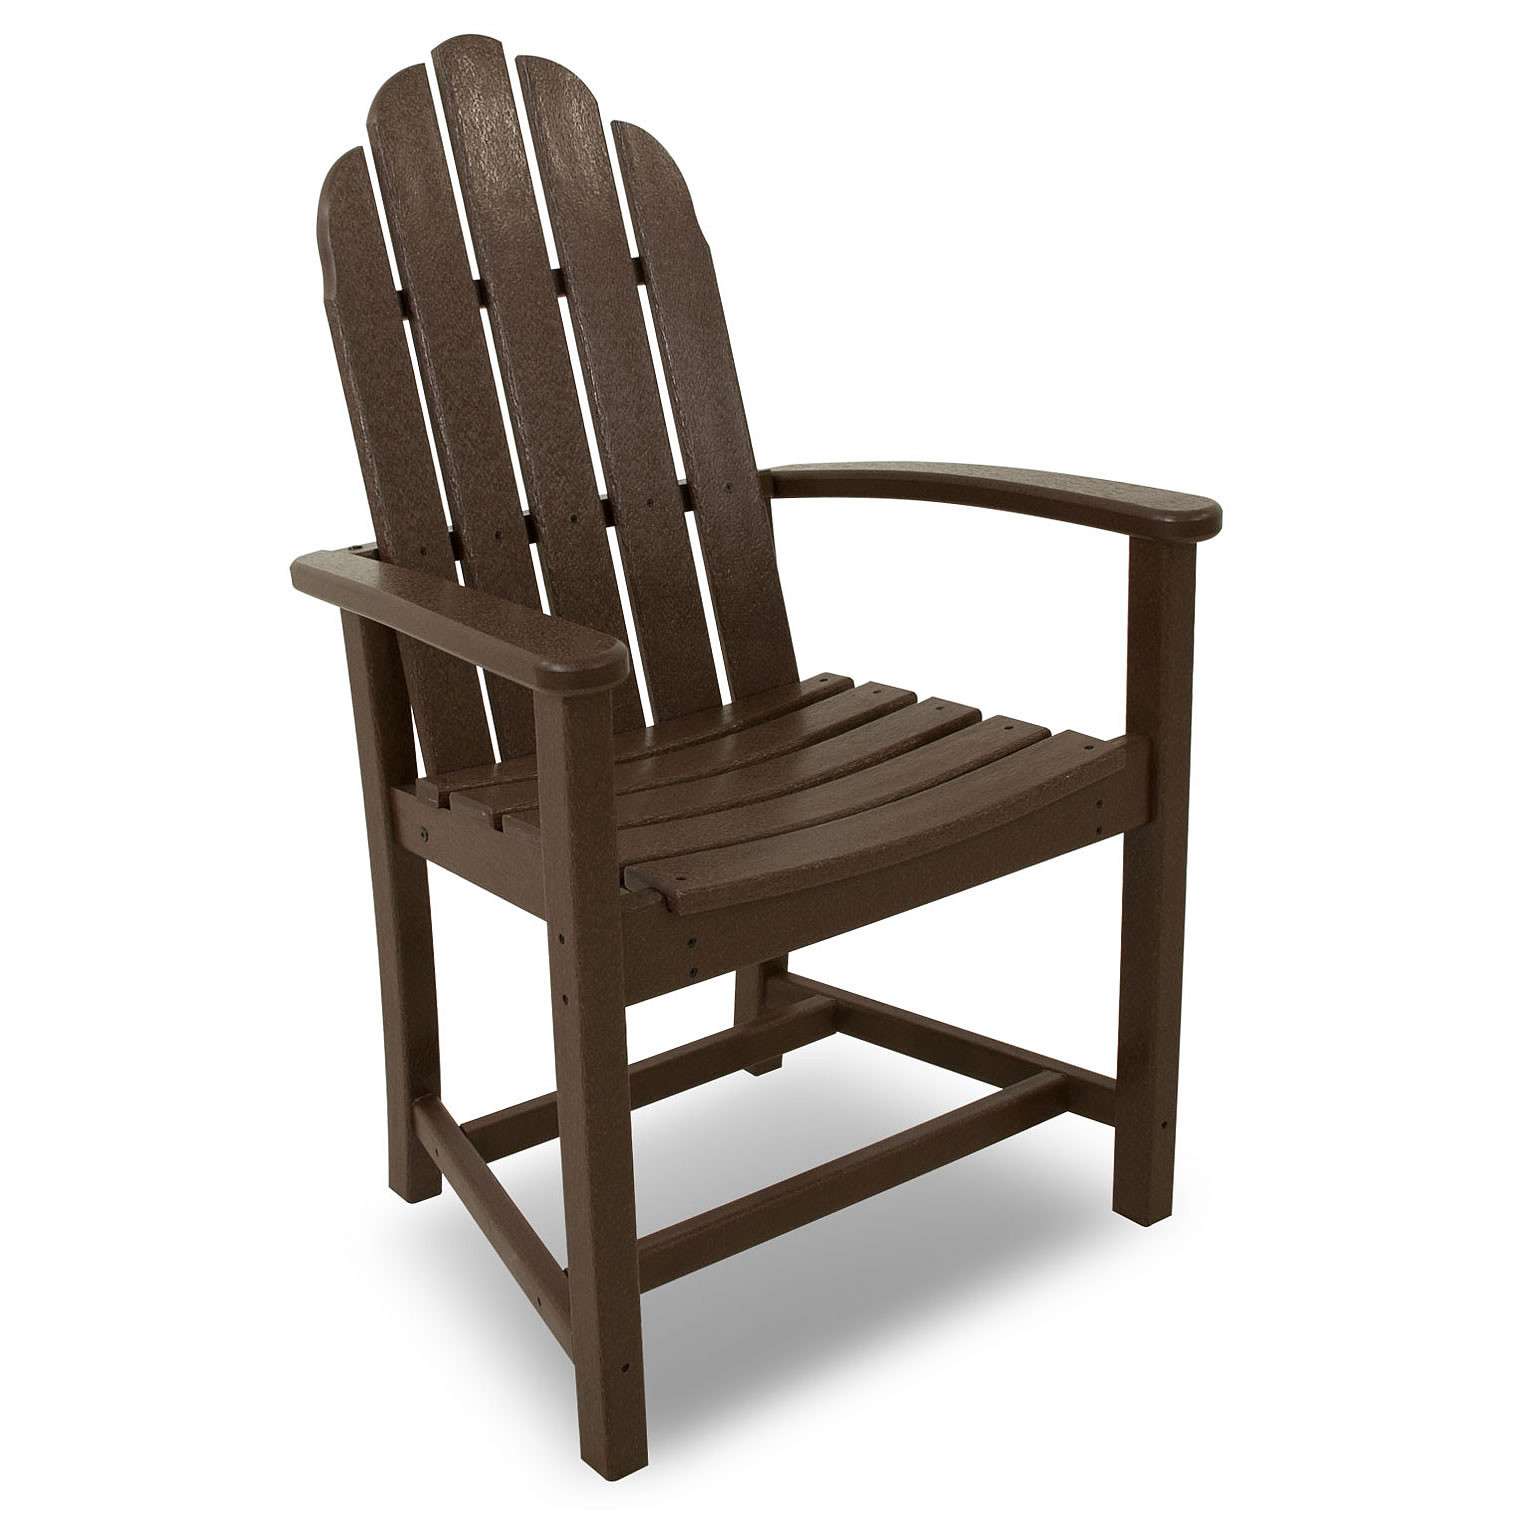 POLYWOOD Classic Adirondack Dining Chair Classic Adirondack POLYWOOD Outdoor Furniture